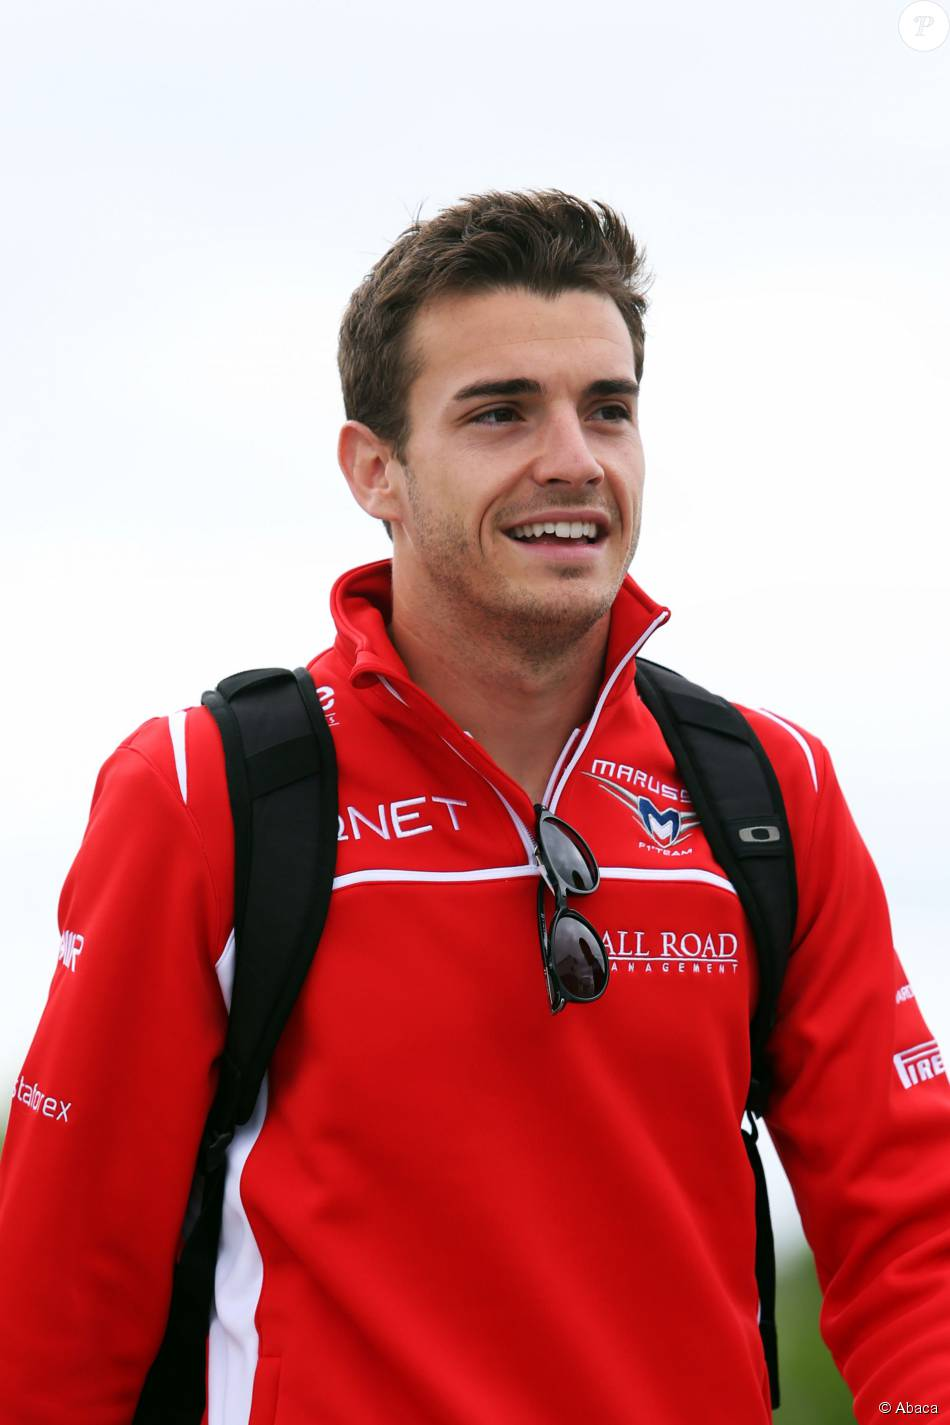 mort de jules bianchi ses obs ques annonc es l 39 motion de son ami max chilton. Black Bedroom Furniture Sets. Home Design Ideas